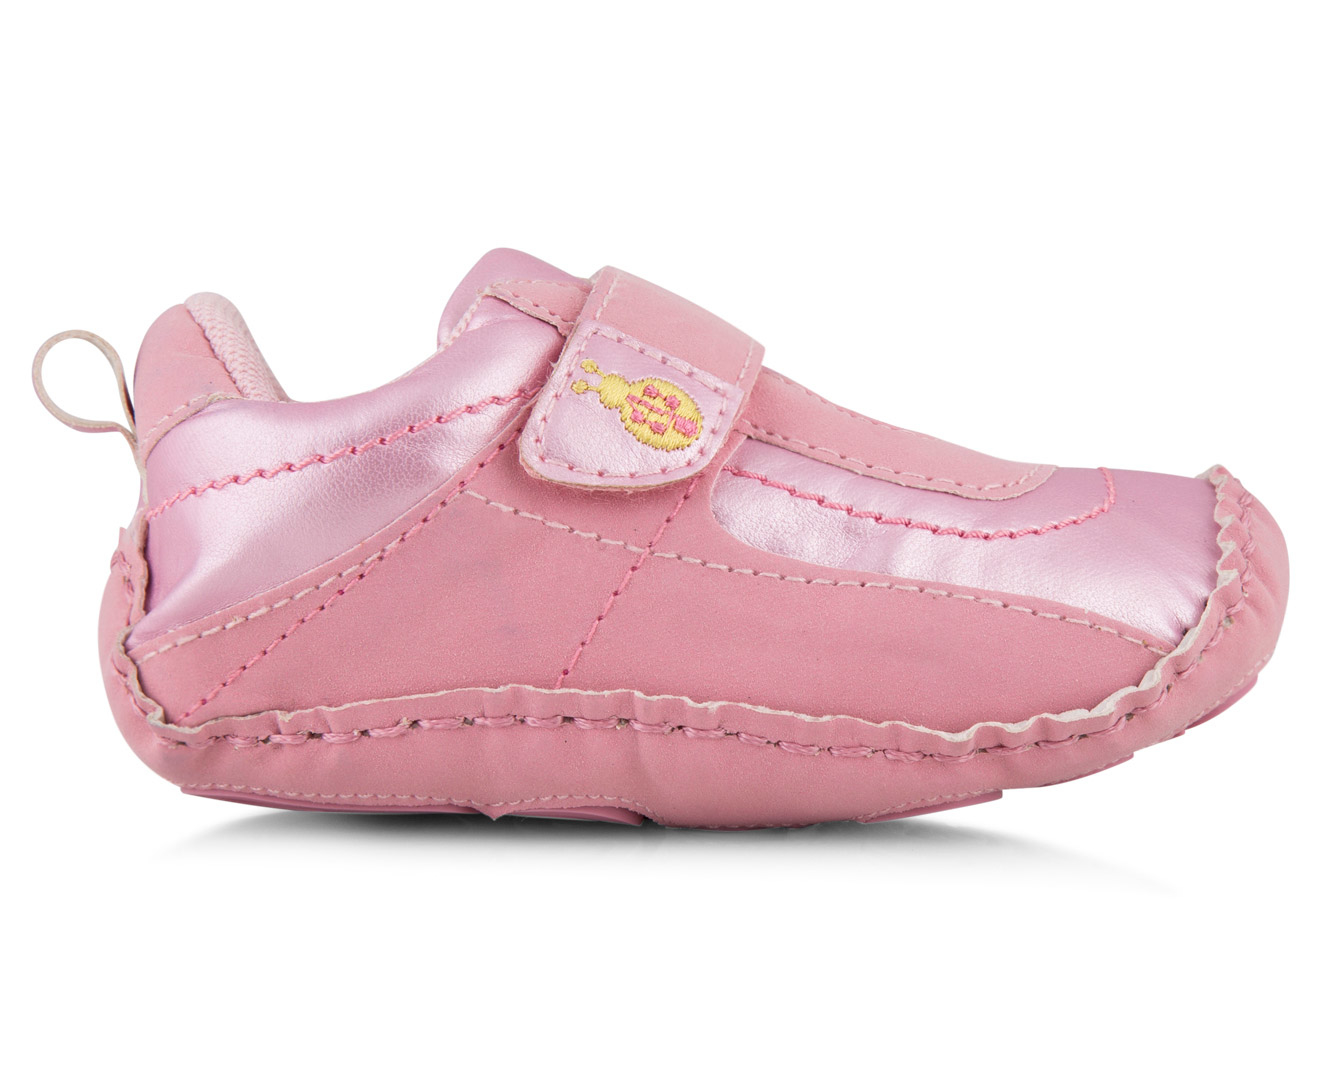 6d0934e190e4 Playette Baby Flex Fit Shoe - Pink